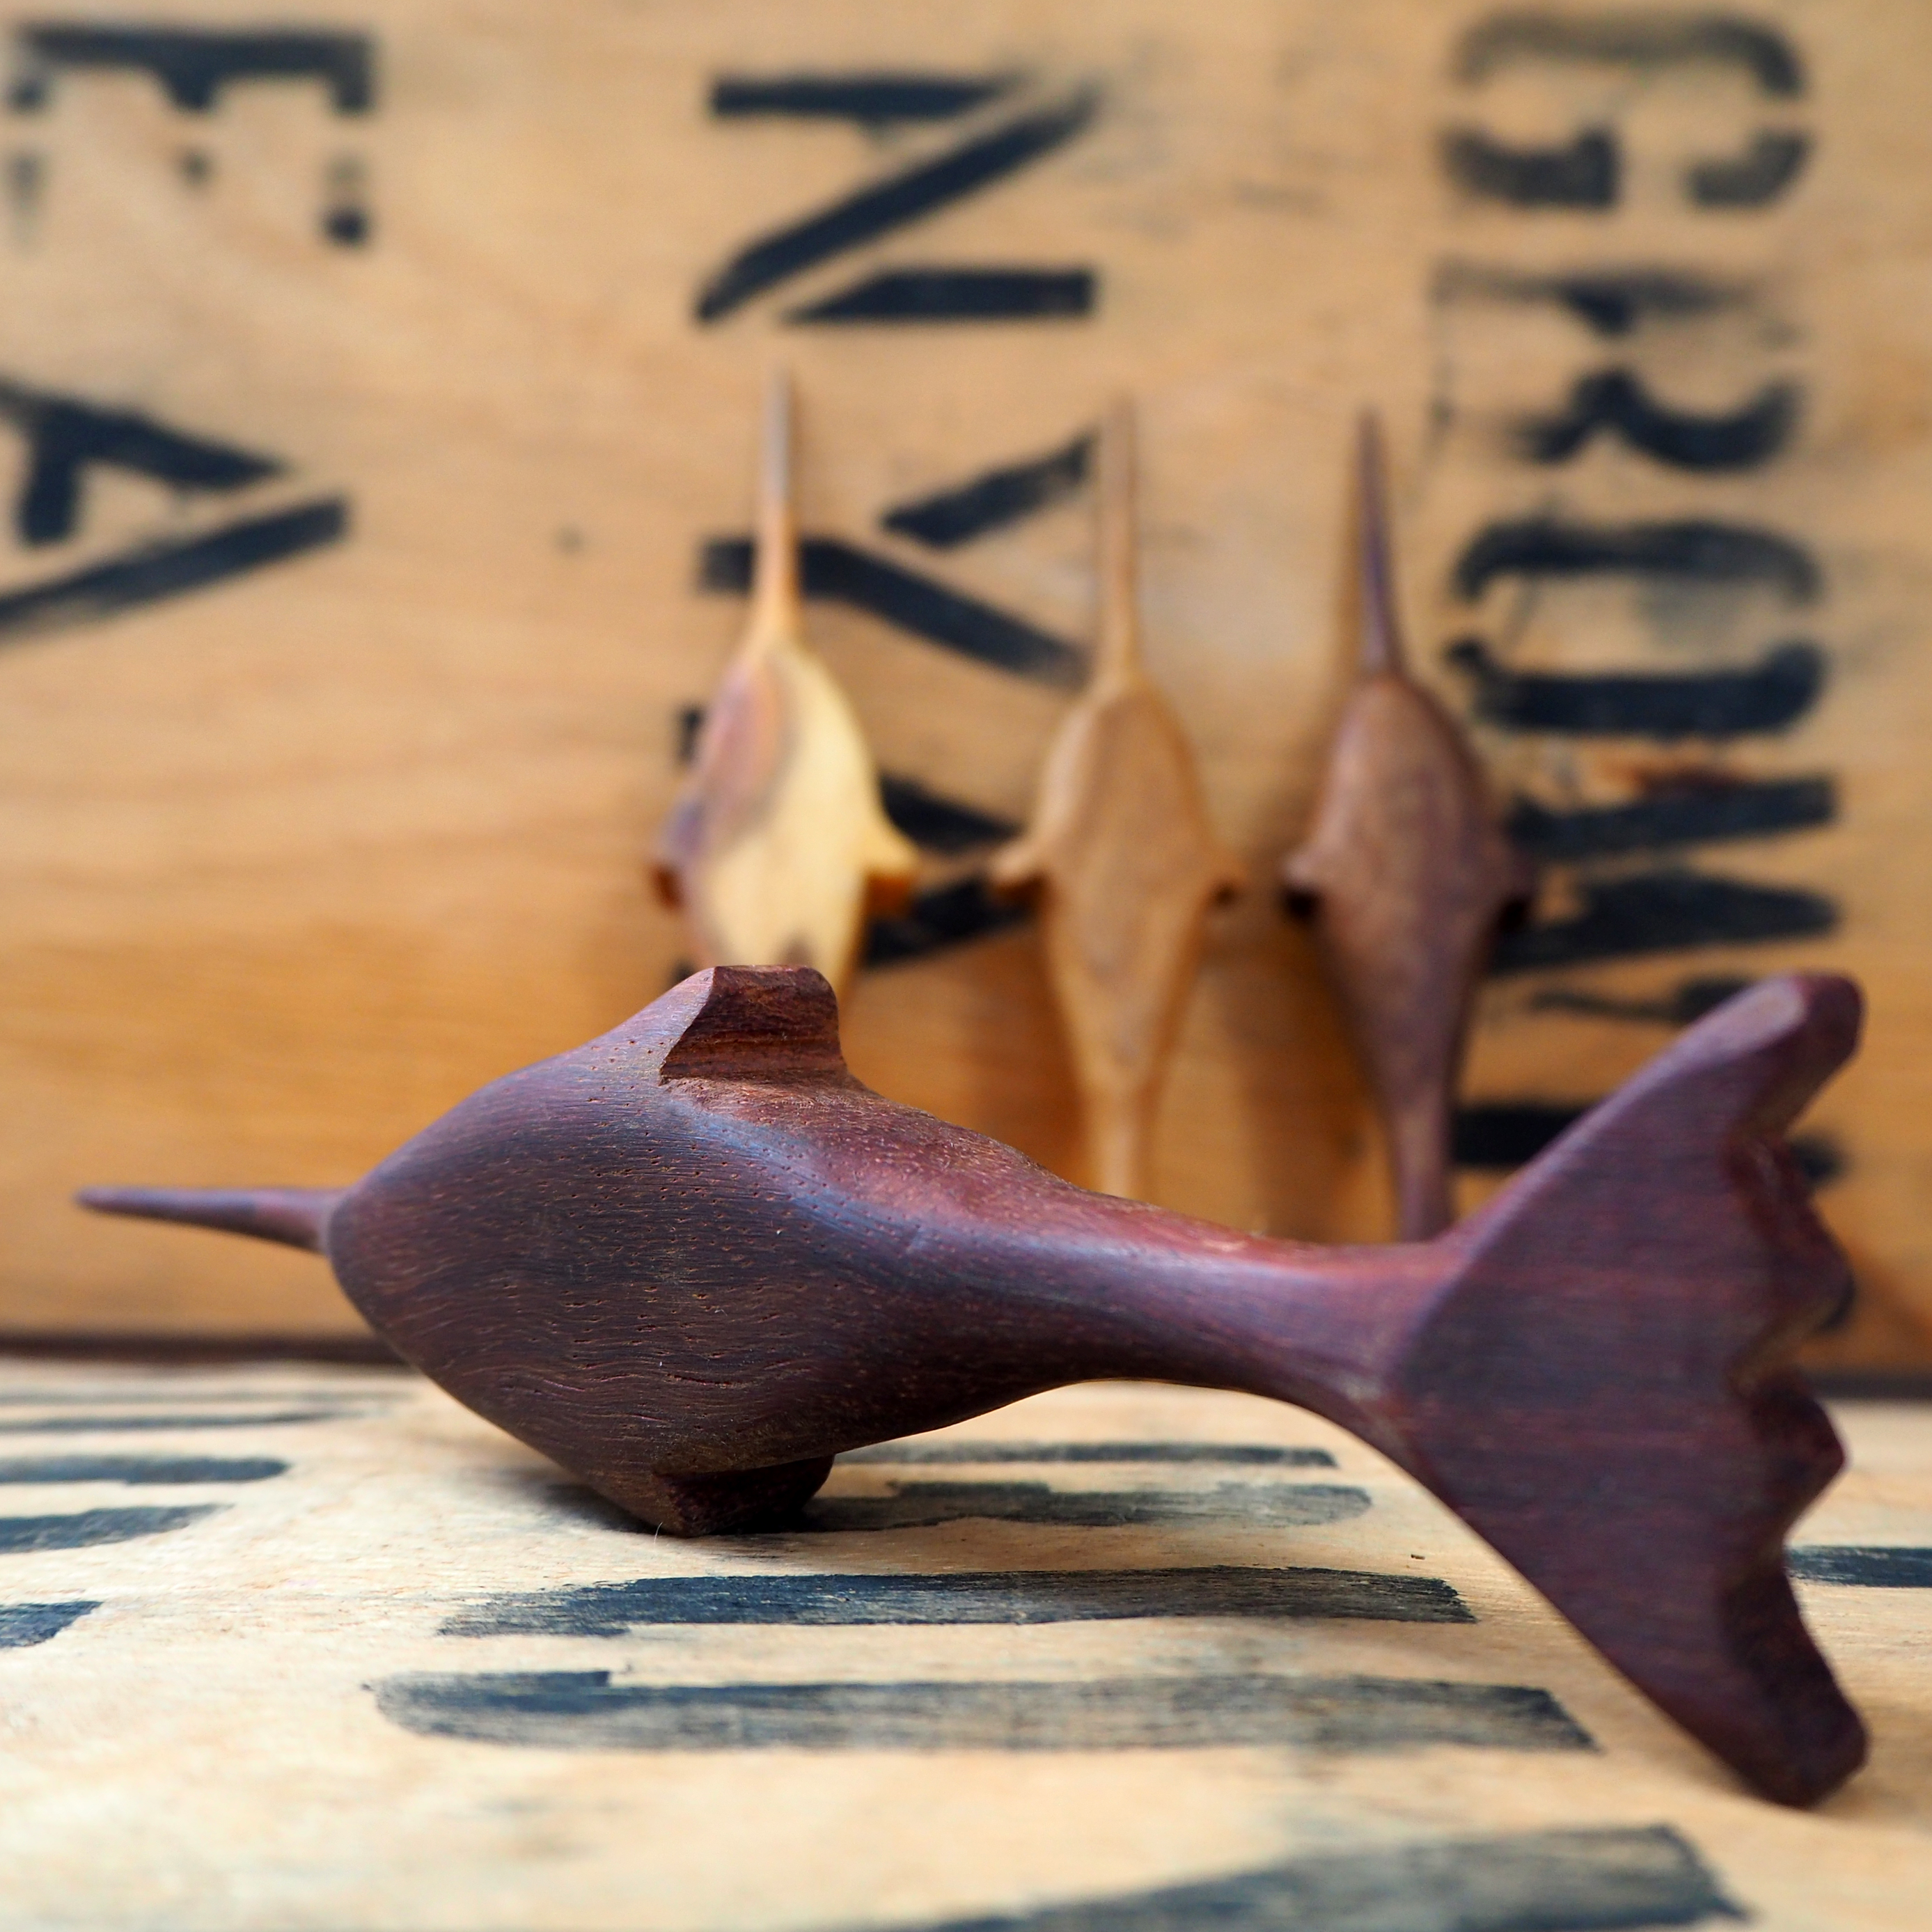 Dark Walnut Tea Ceremony Narwhal By Rosie Brewer